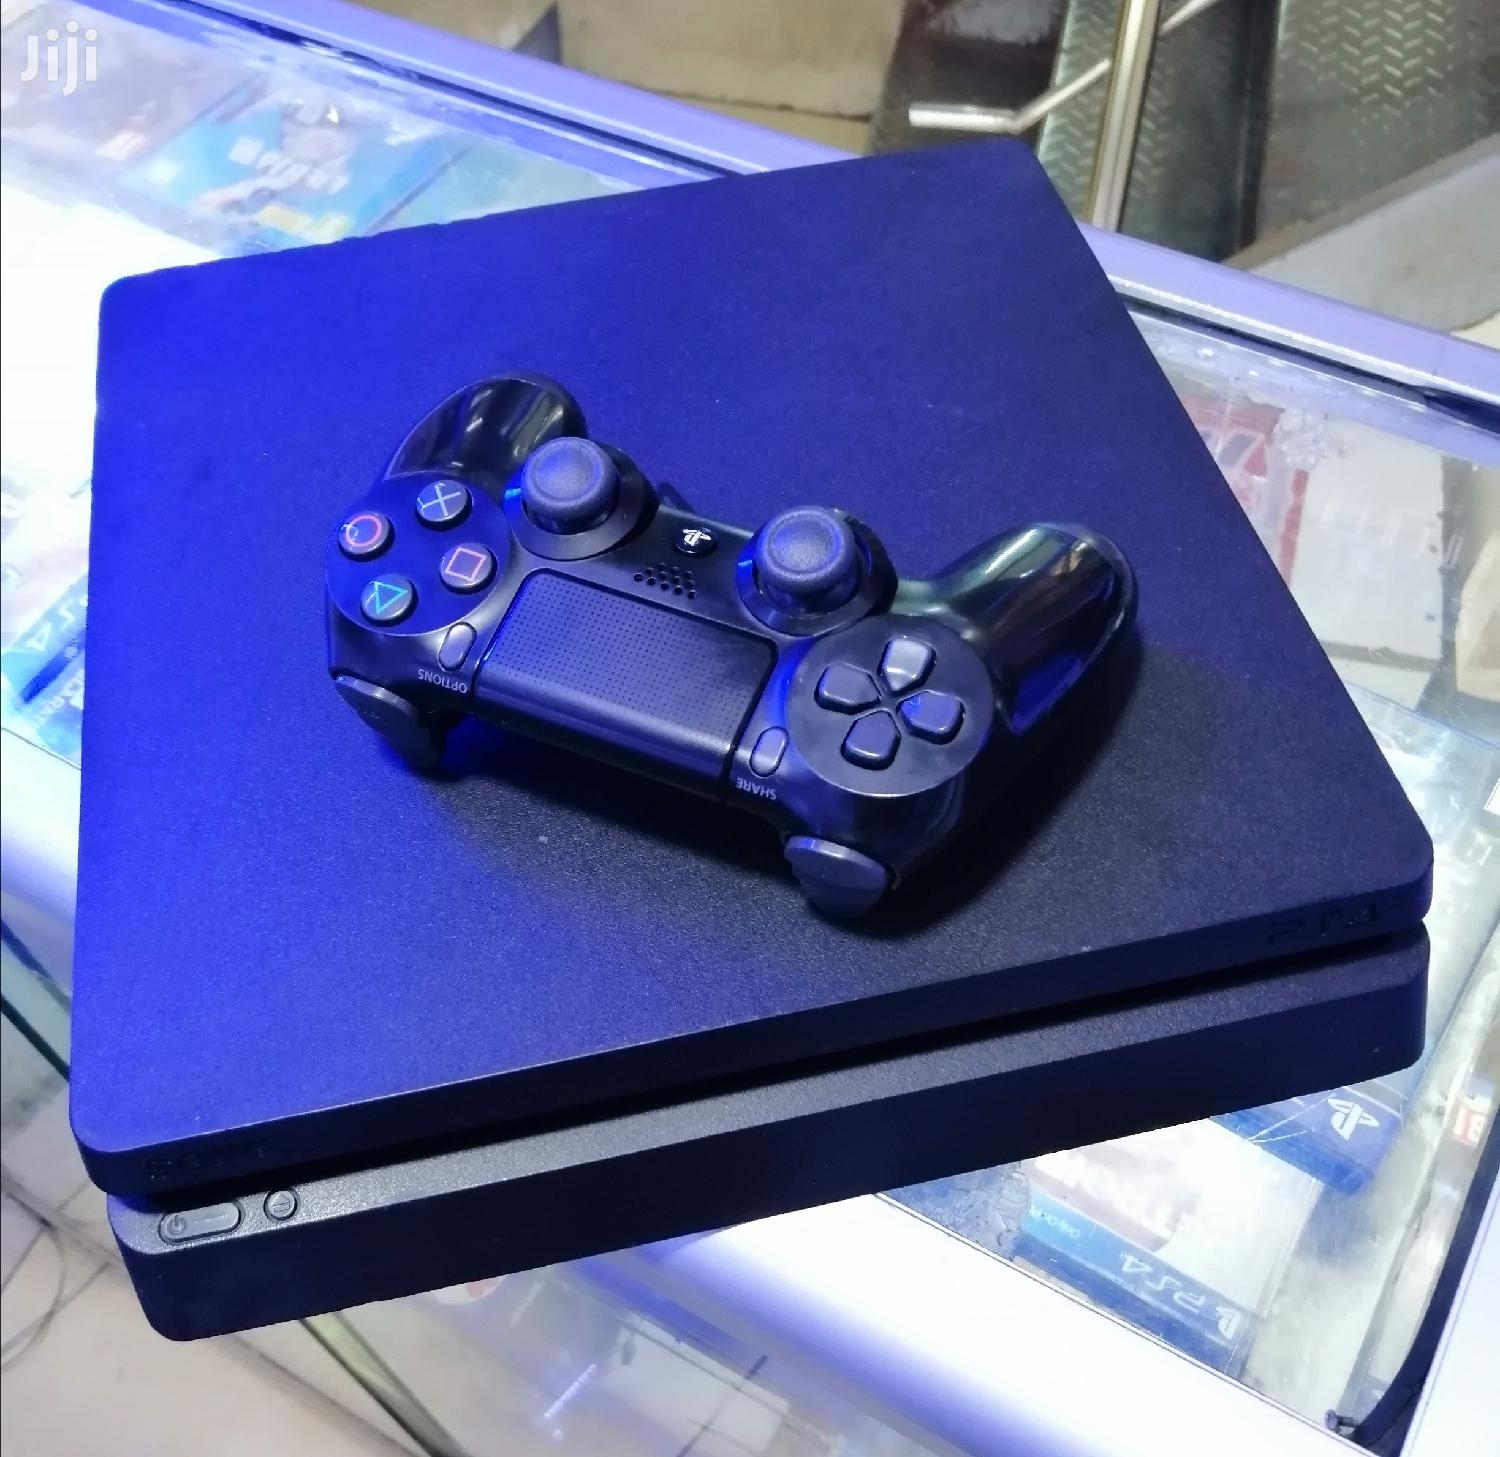 Archive: Almost New Playstation 4 Slim